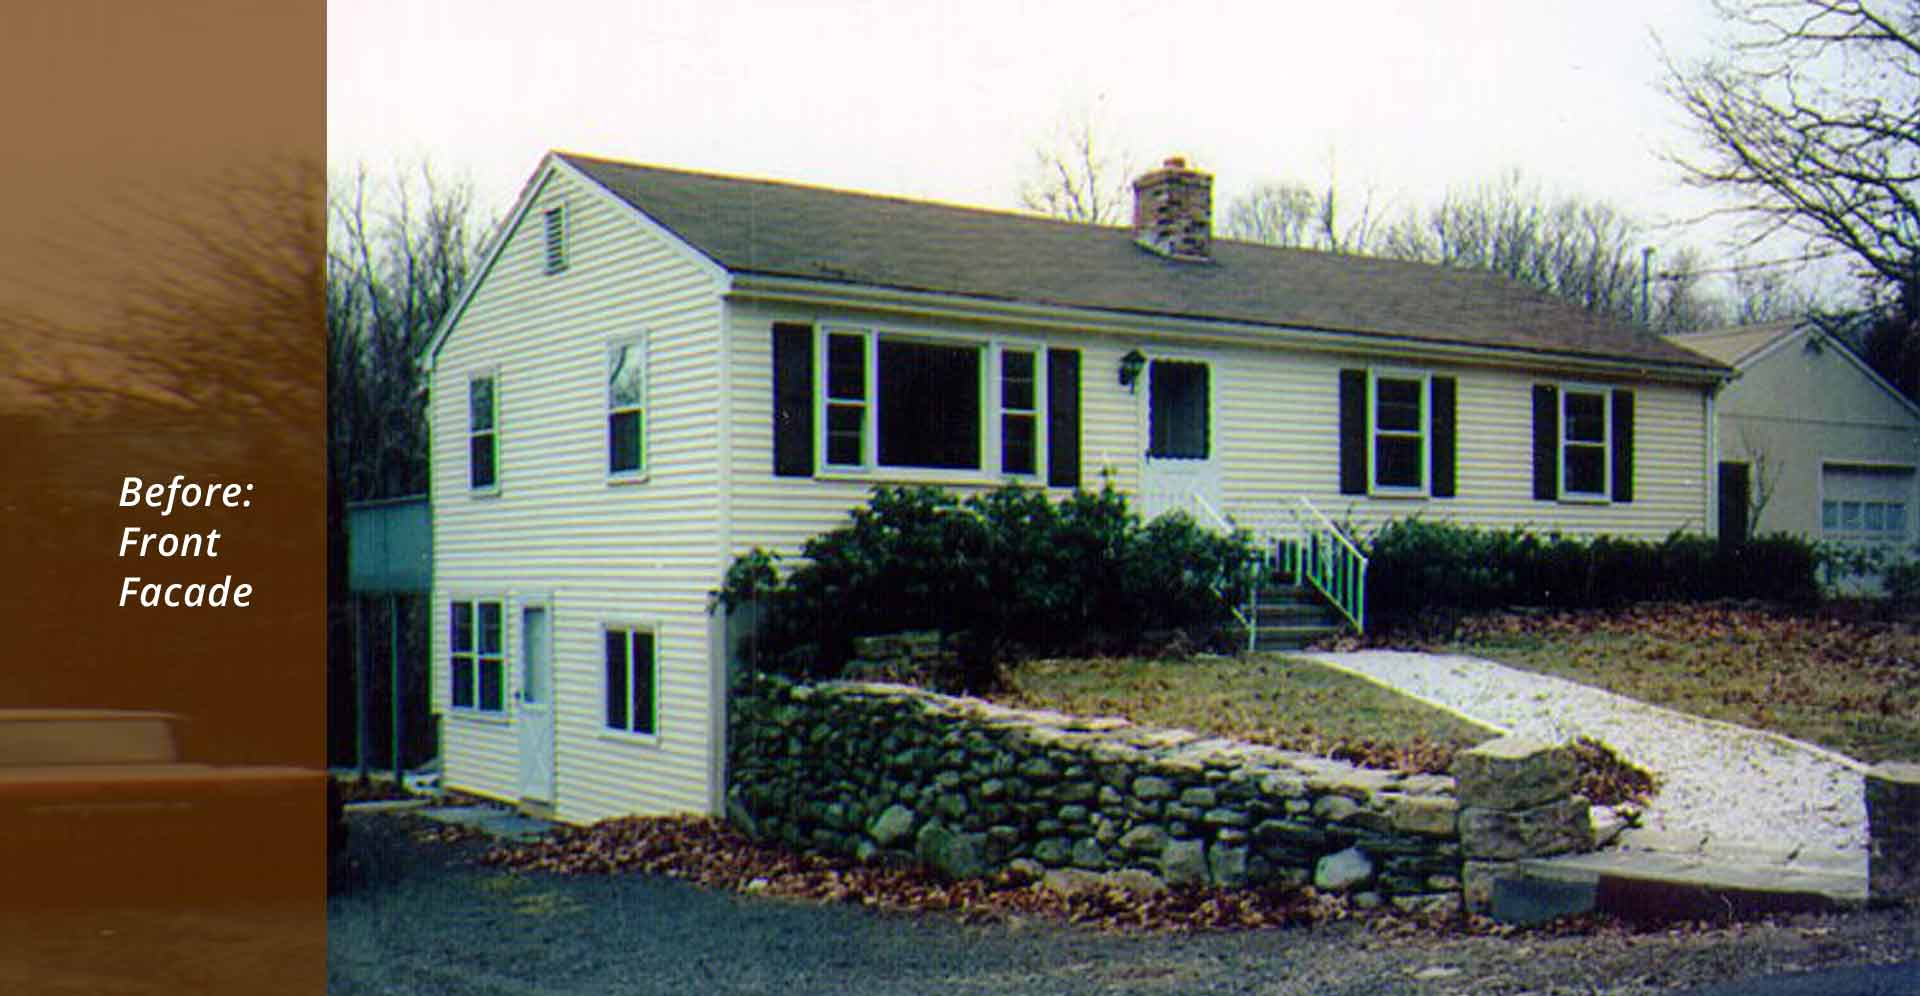 GUILFORD-PRIVATE-RESIDENCE-BEFORE.jpg